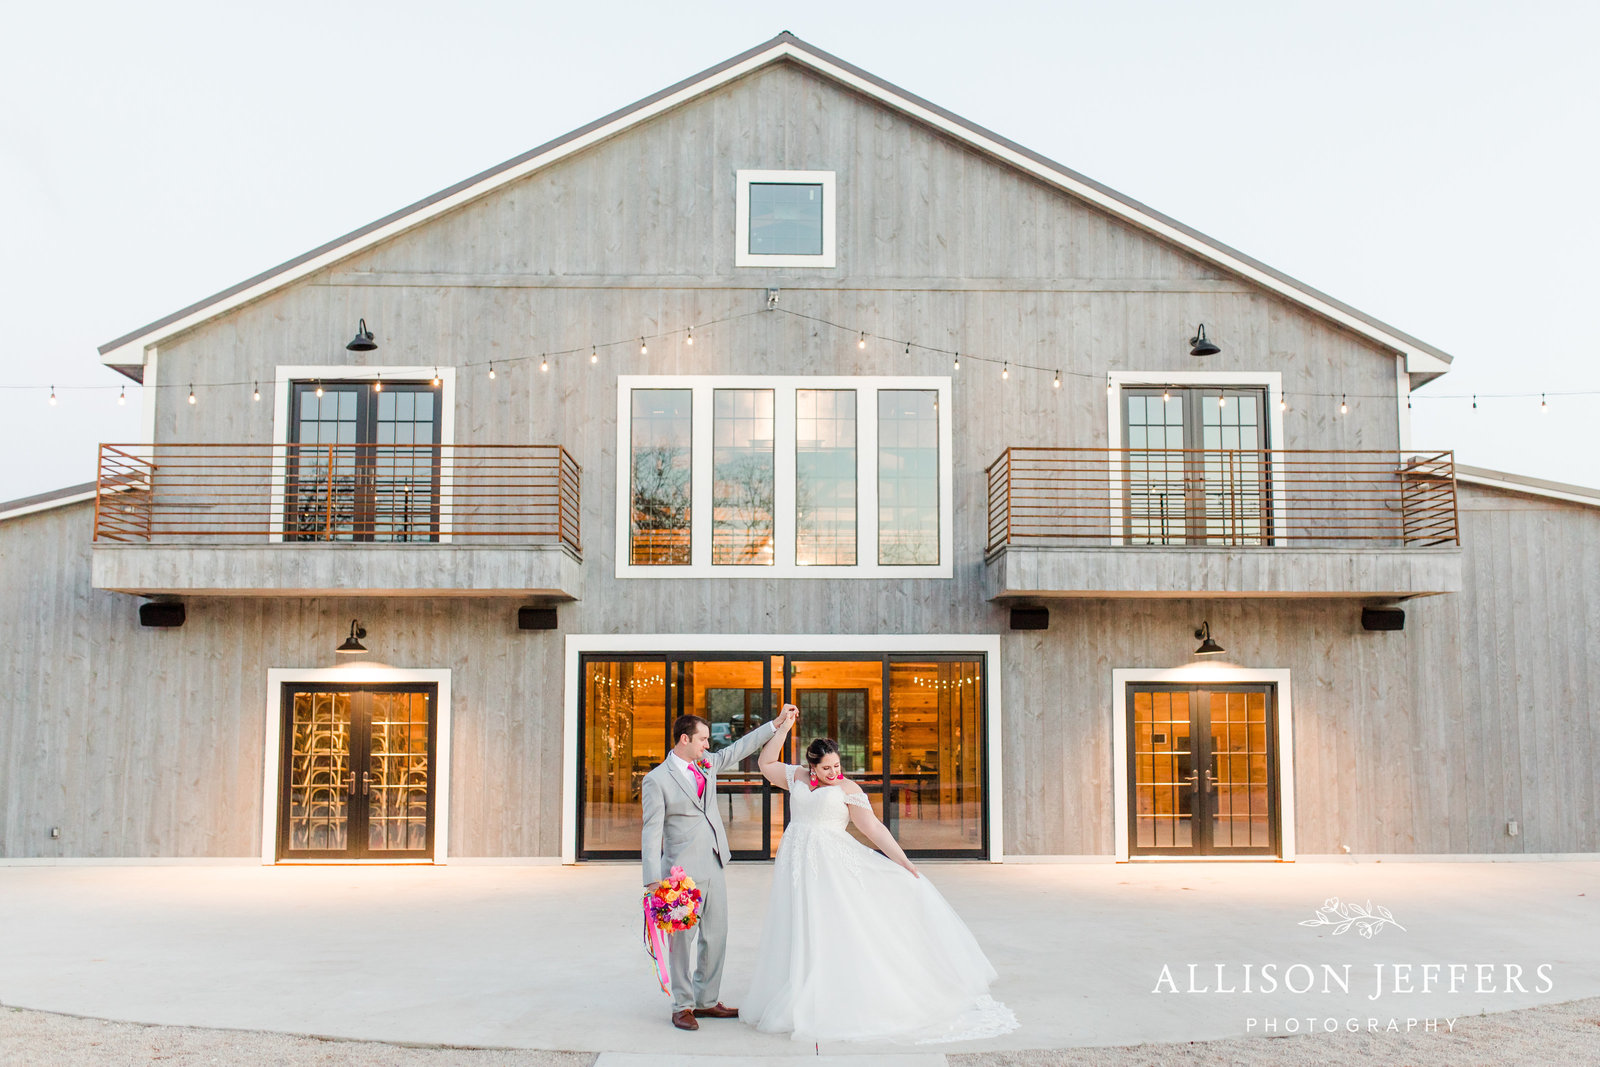 wedding day at The Barn at Swallows Eve in Fredericksburg, TX